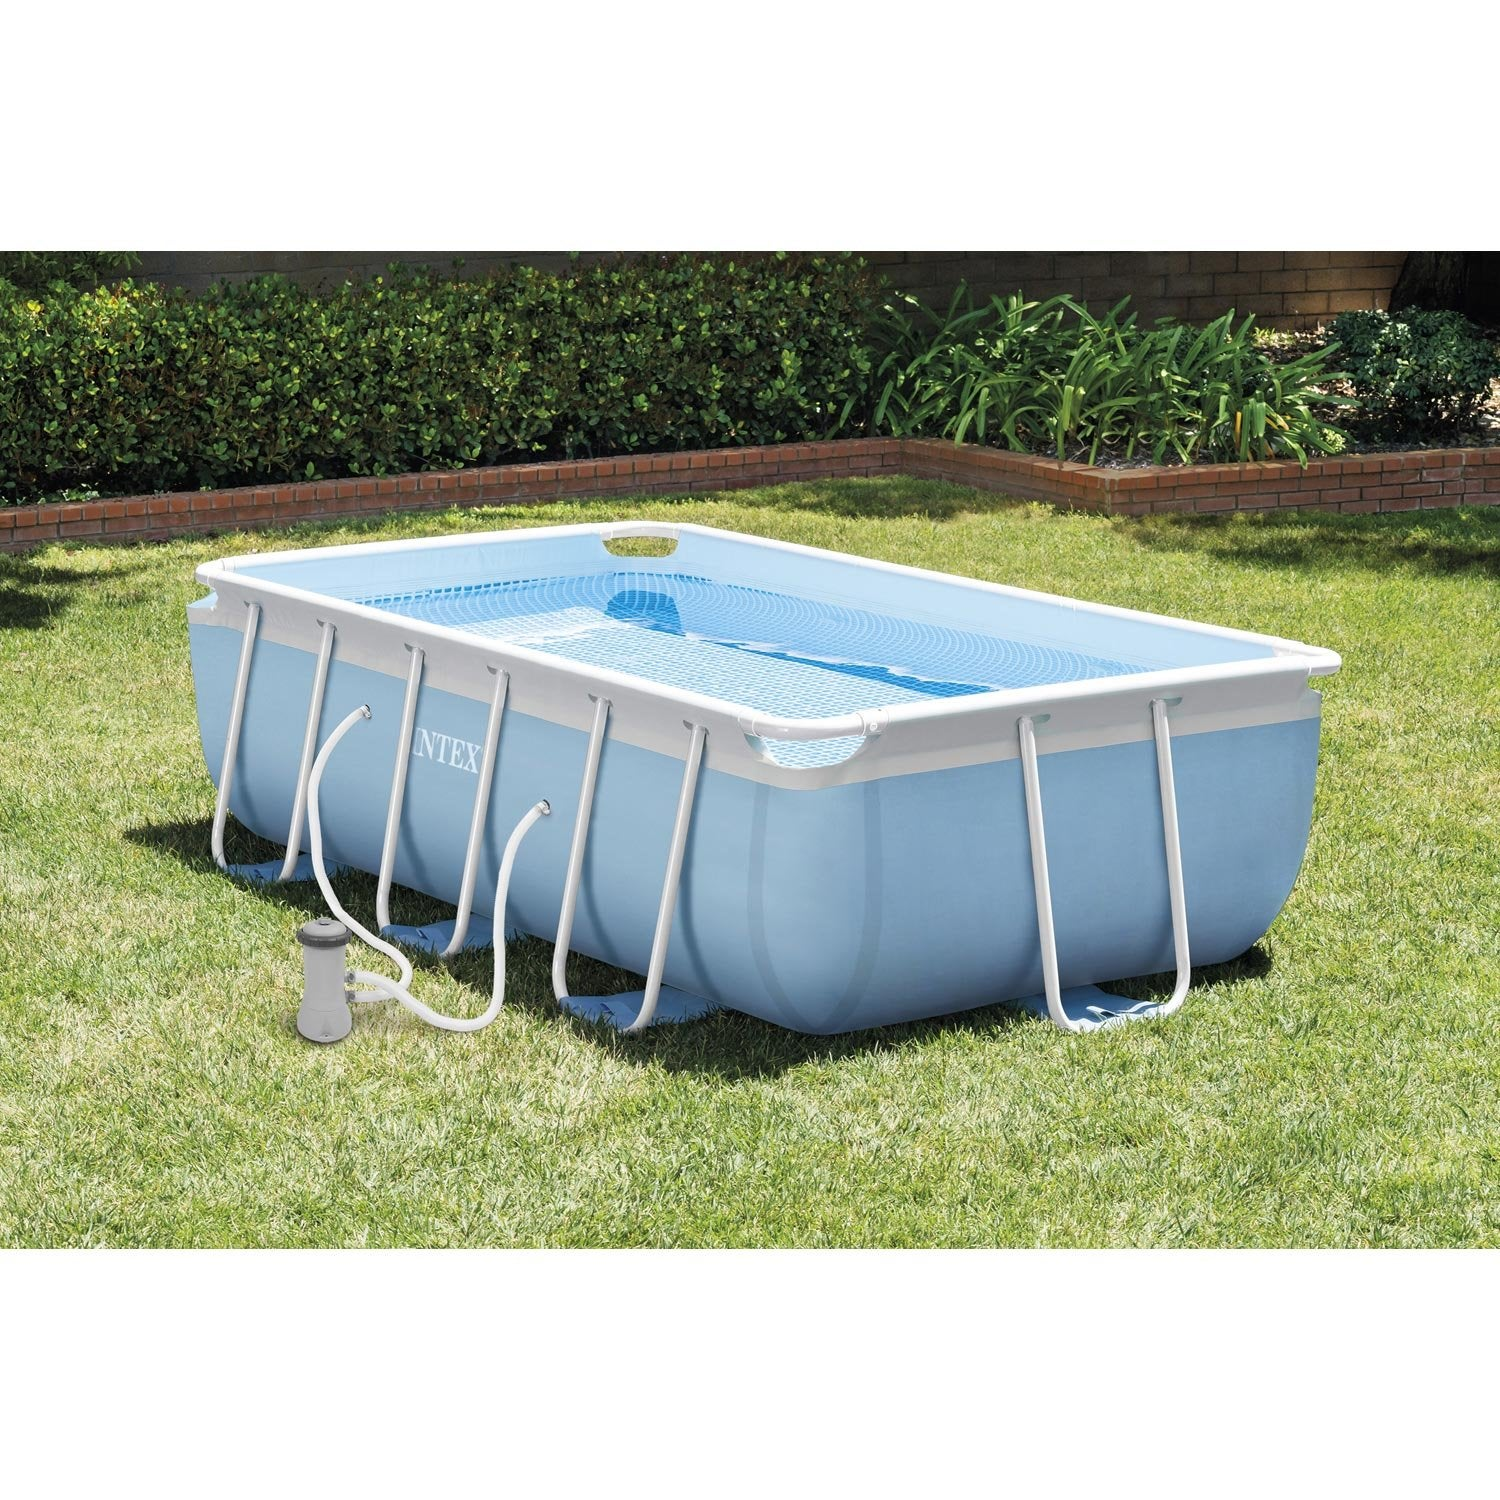 Piscine hors sol autoportante tubulaire intex l 3 4 x l 2 for Piscine aluminium hors sol